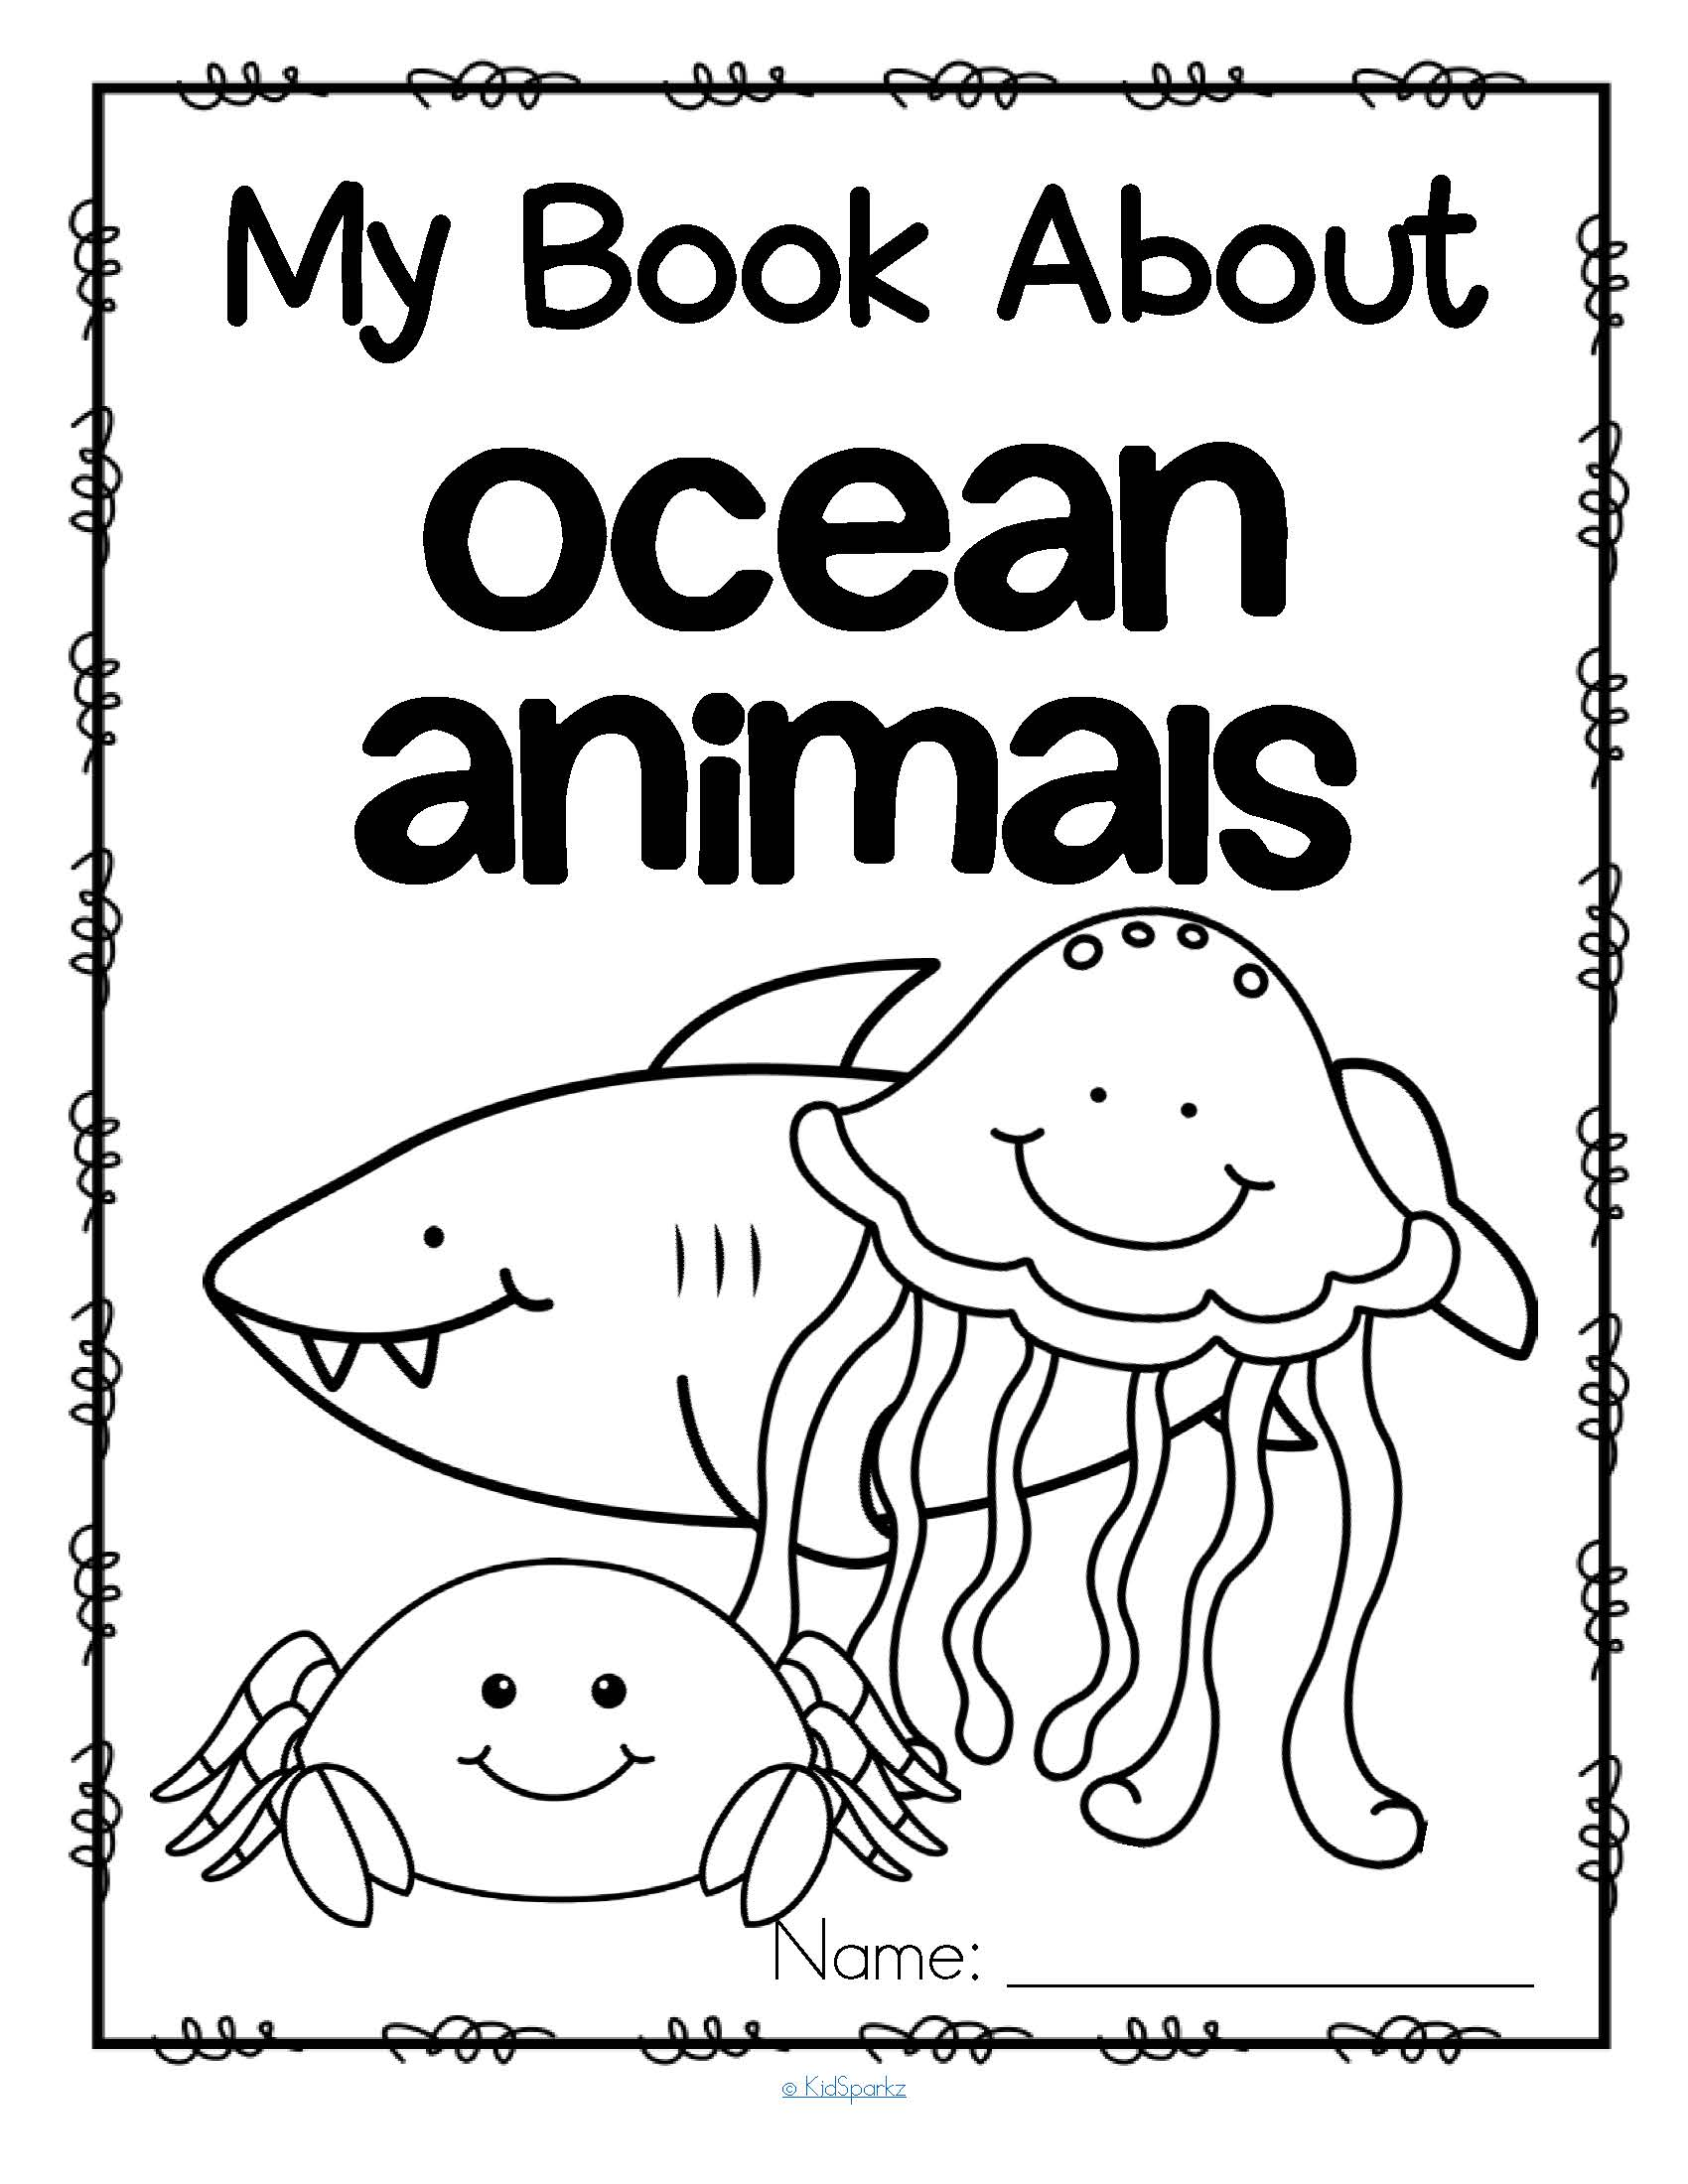 My Book About Ocean Animals